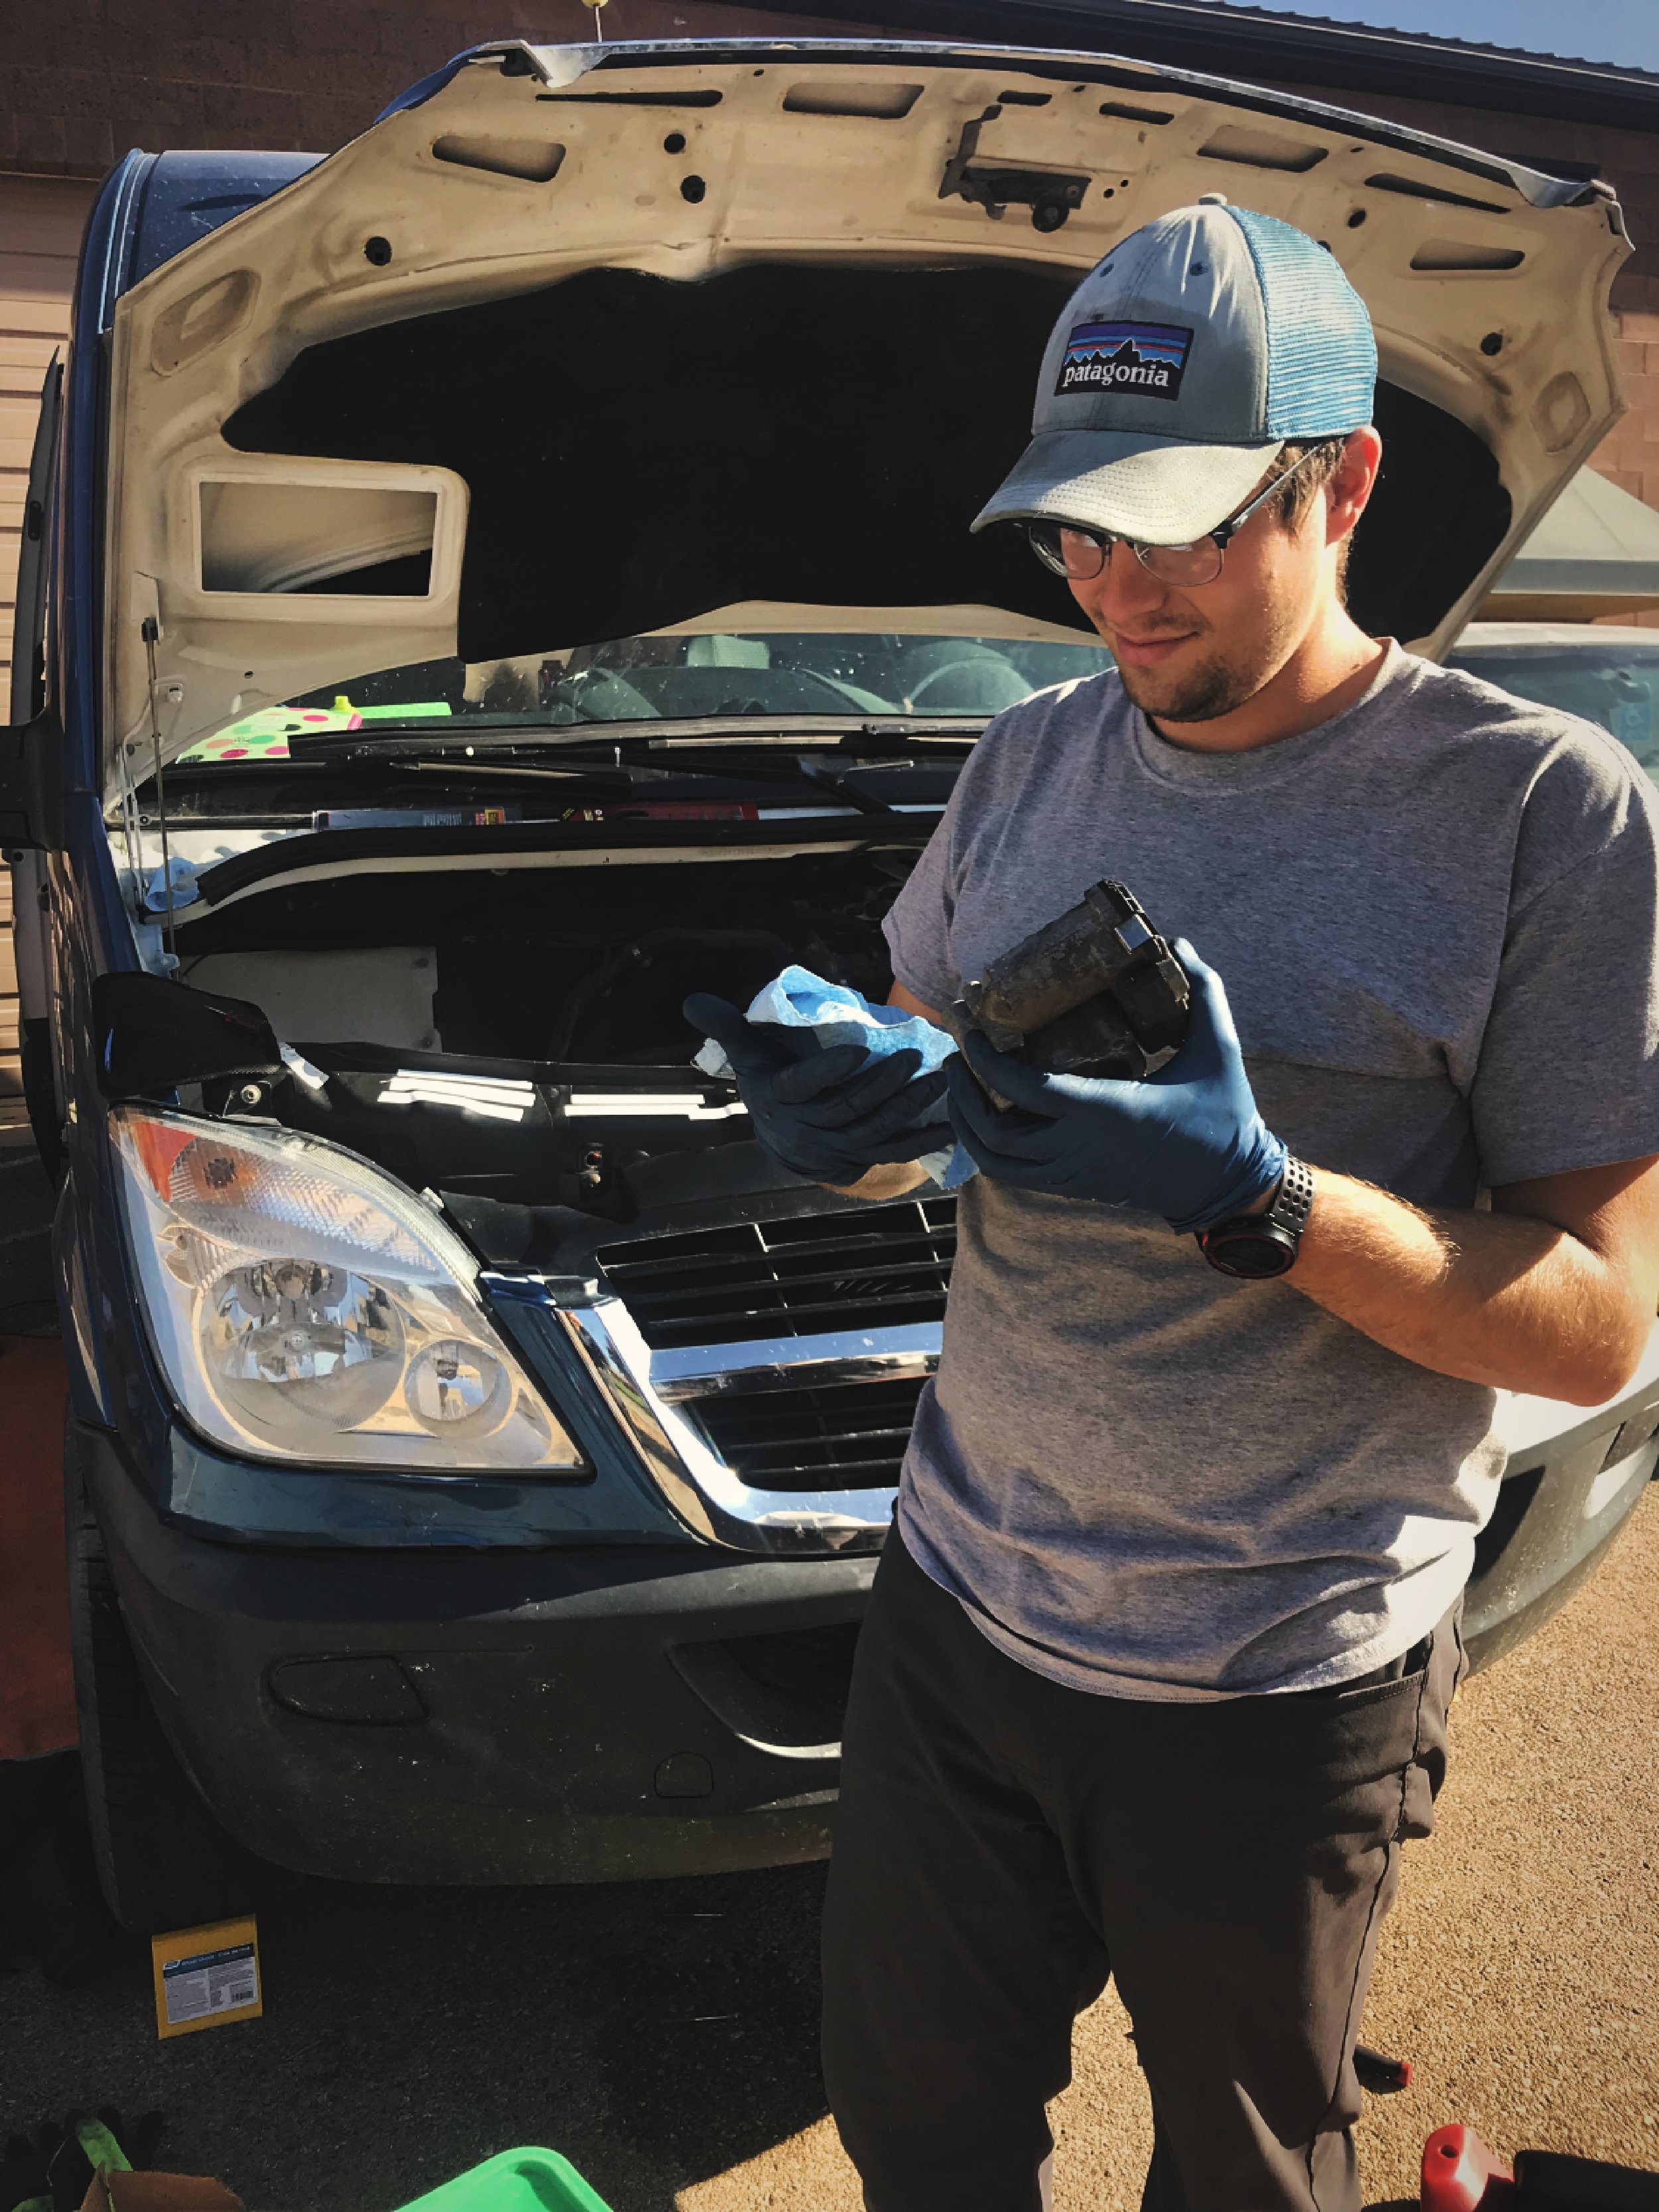 Figure out what parts you need before you start to tear your vehicle apart and can't move.